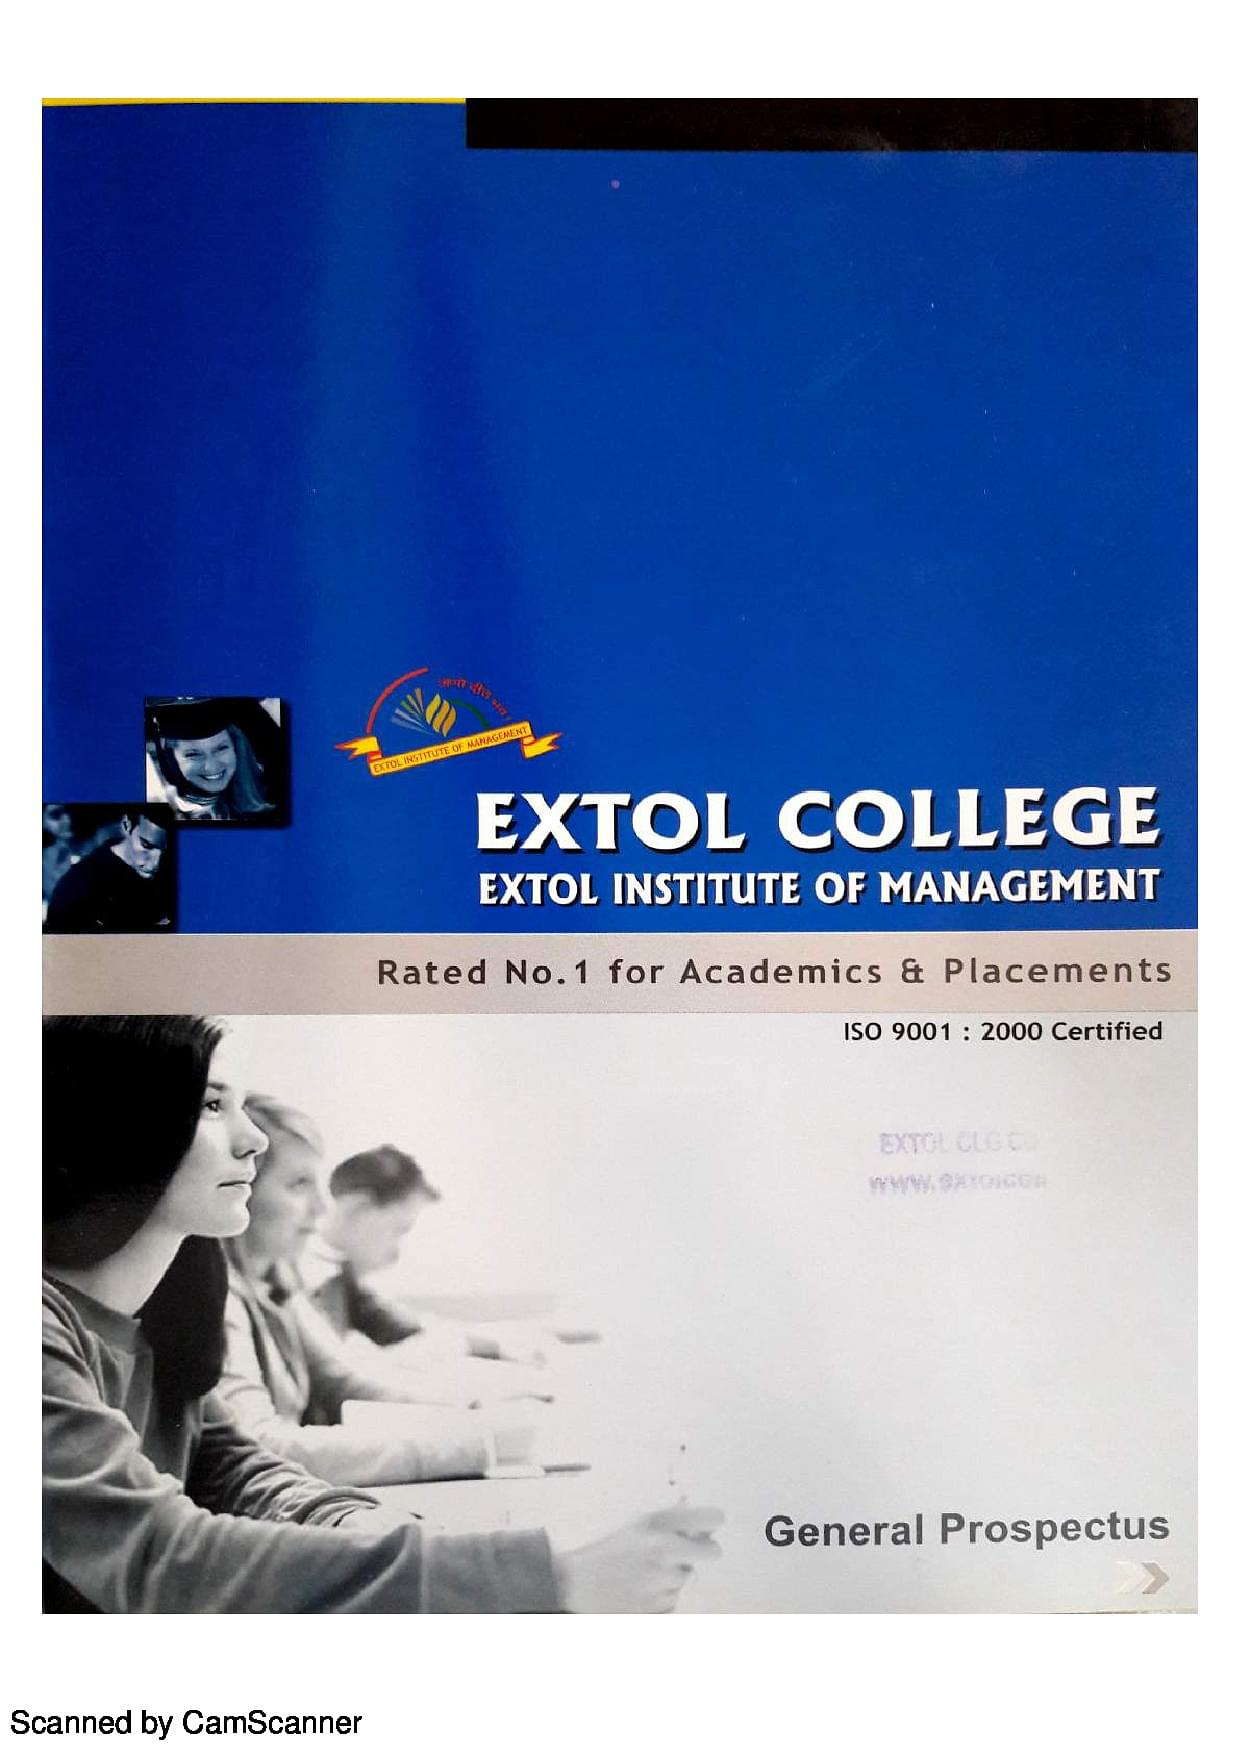 extol college About extol institute of management and technology extol institute of managemente and technology is affiliated to barkatullah university the college has been continuously rated as no1 institutions group in professional higher education in central india by leading magazines, government rating agencies and policy makers.